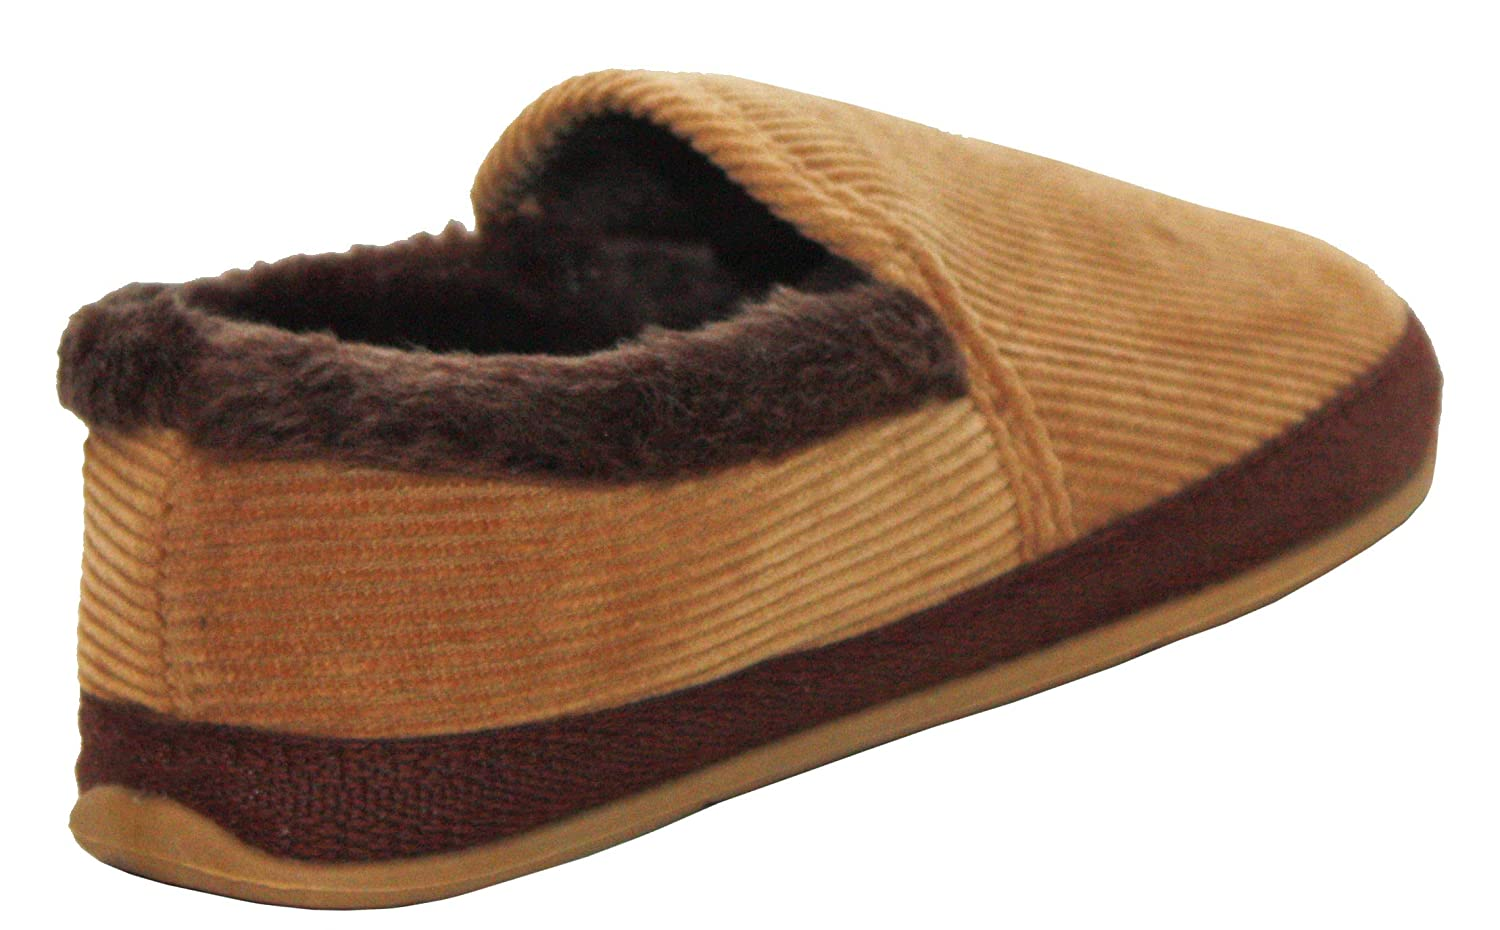 Mens Slip On Slippers Cord Tan Brown Warm Lined Hard Soled Coolers Premier